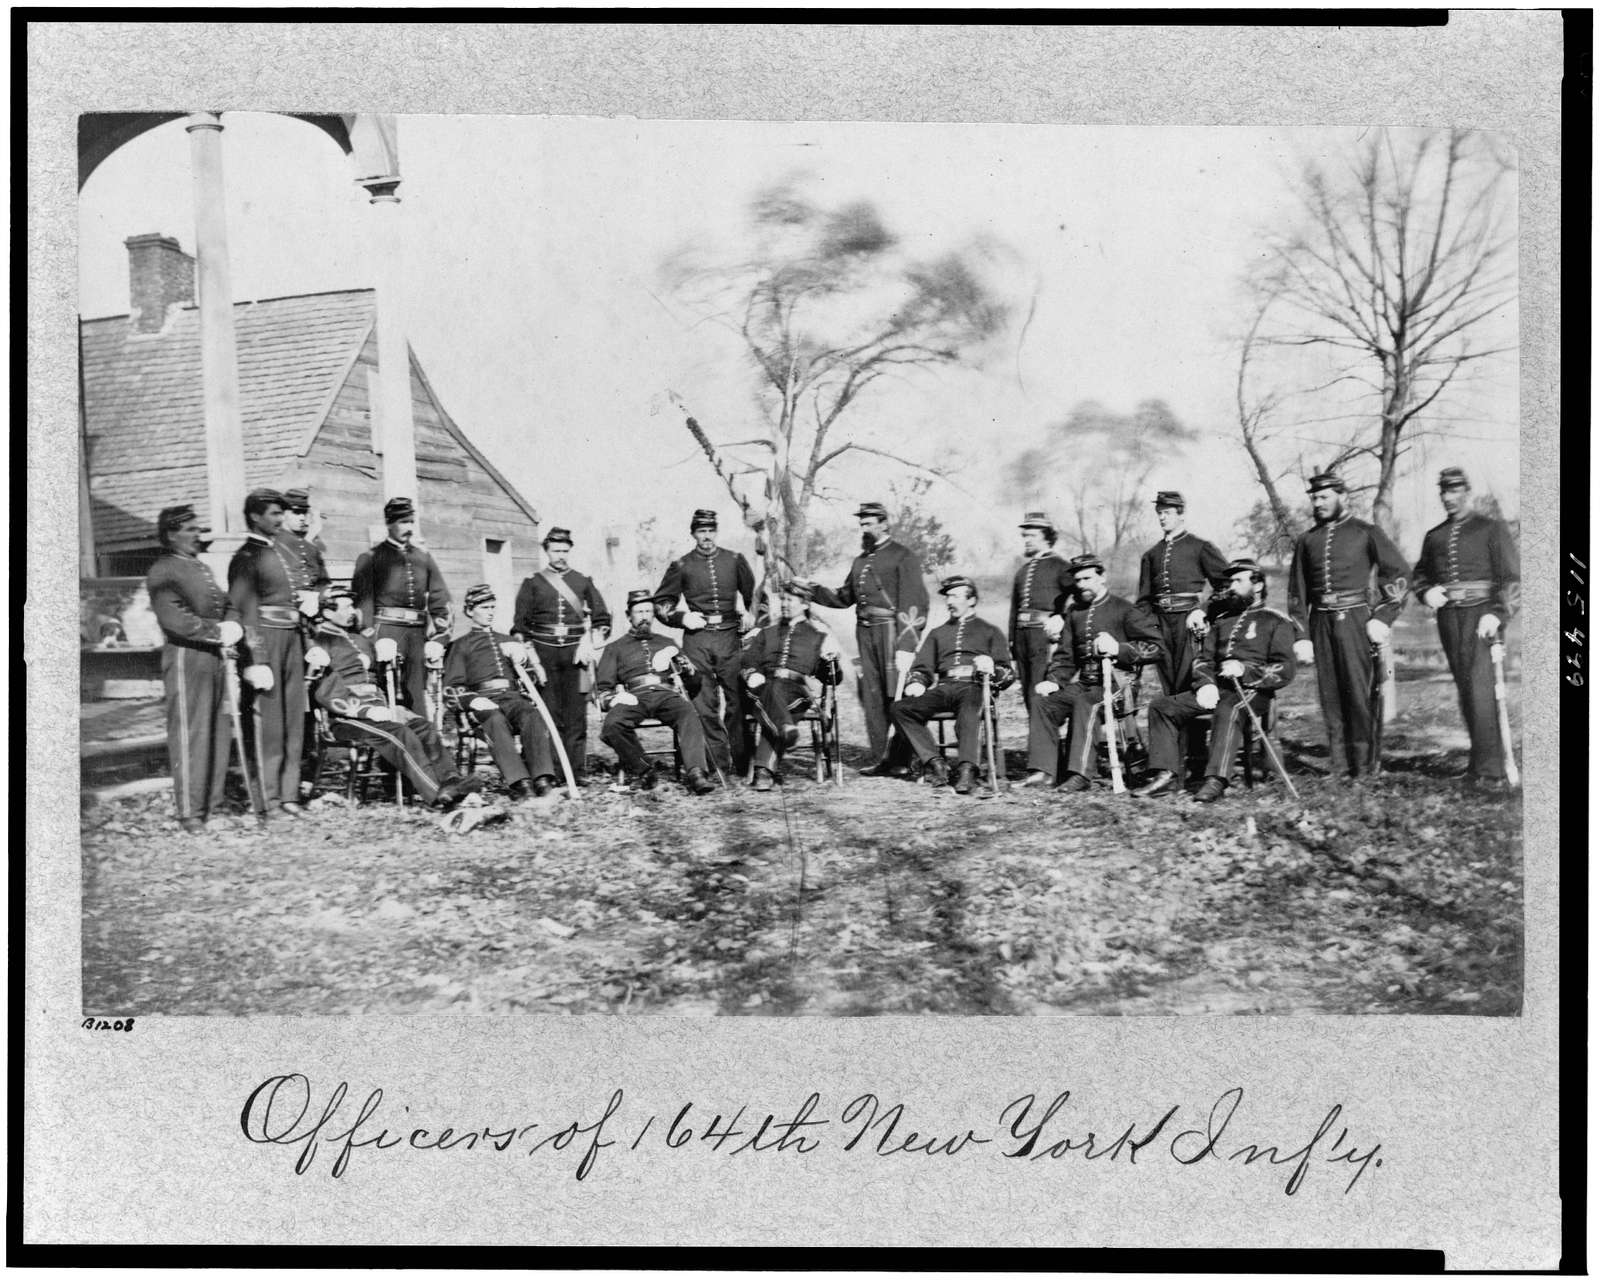 Officers of 164th New York Inf'y [i.e. Infantry]